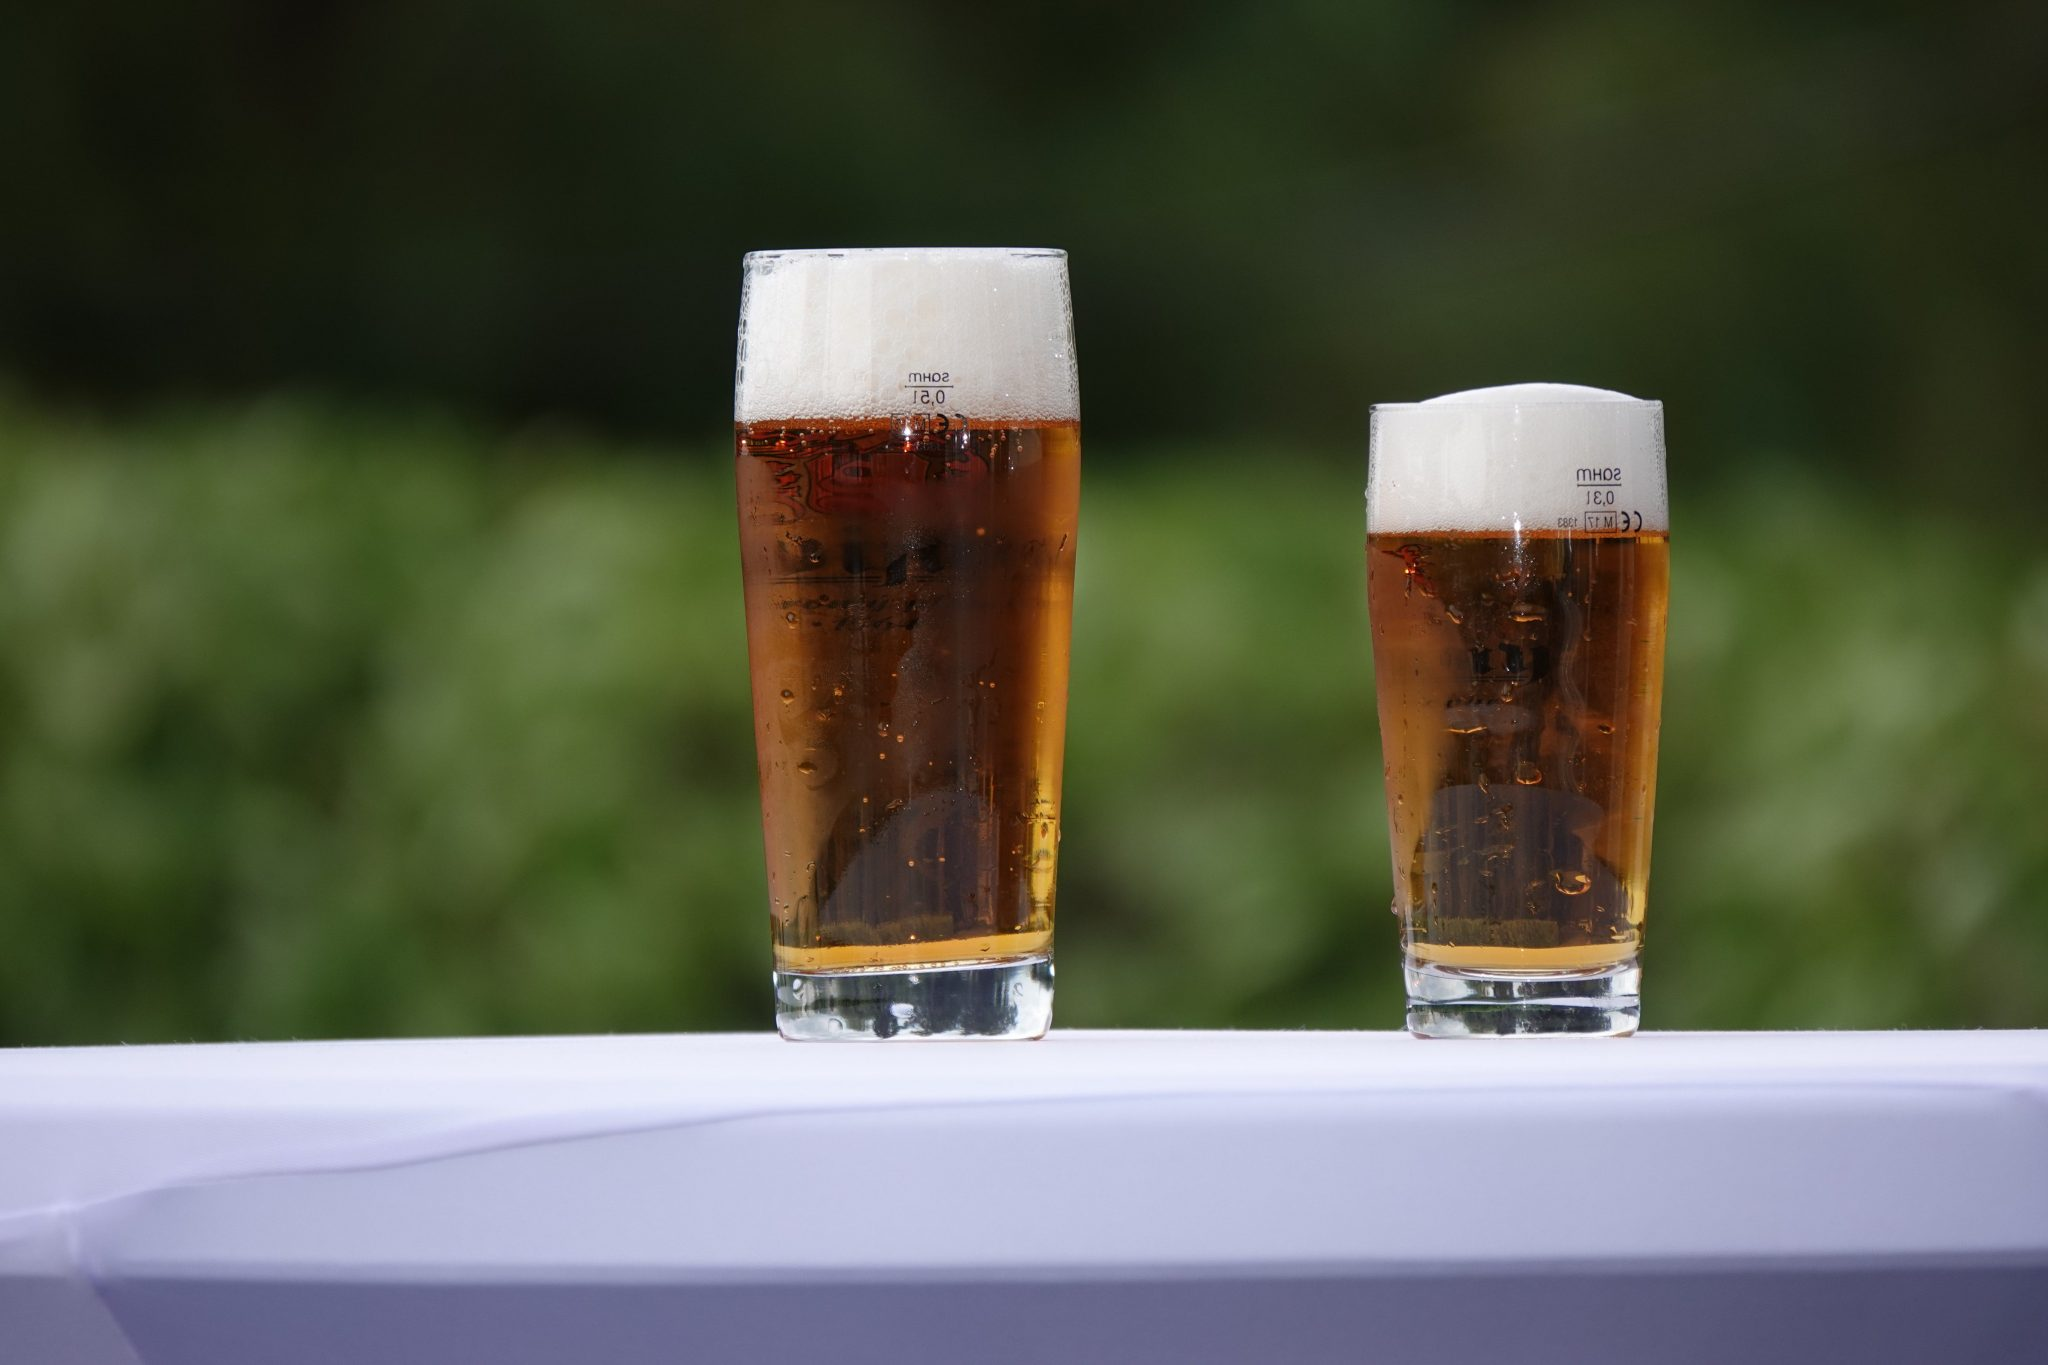 2 beer glasses, how to reduce drinking